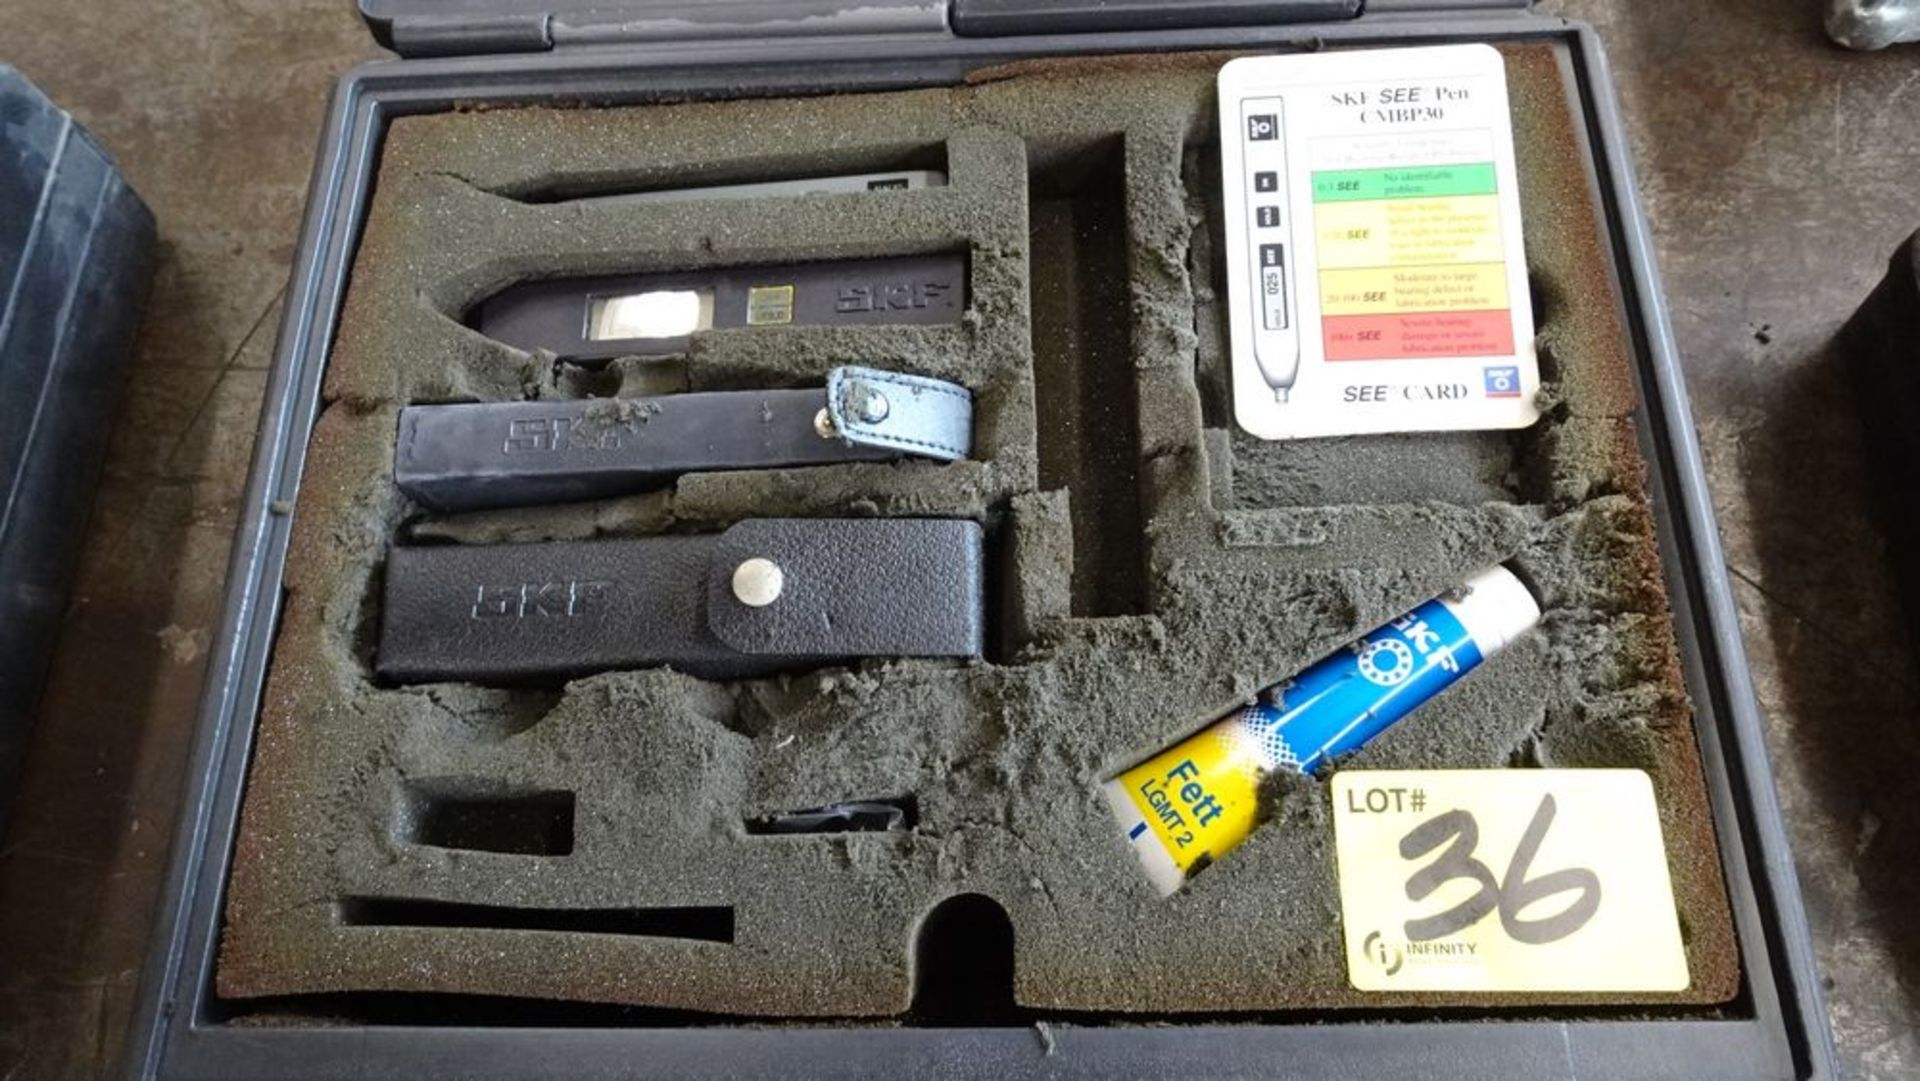 Lot 36 - SKF CMPK30 PLUS BASIC CONDITION MONITORING PACKAGE C/W CASE